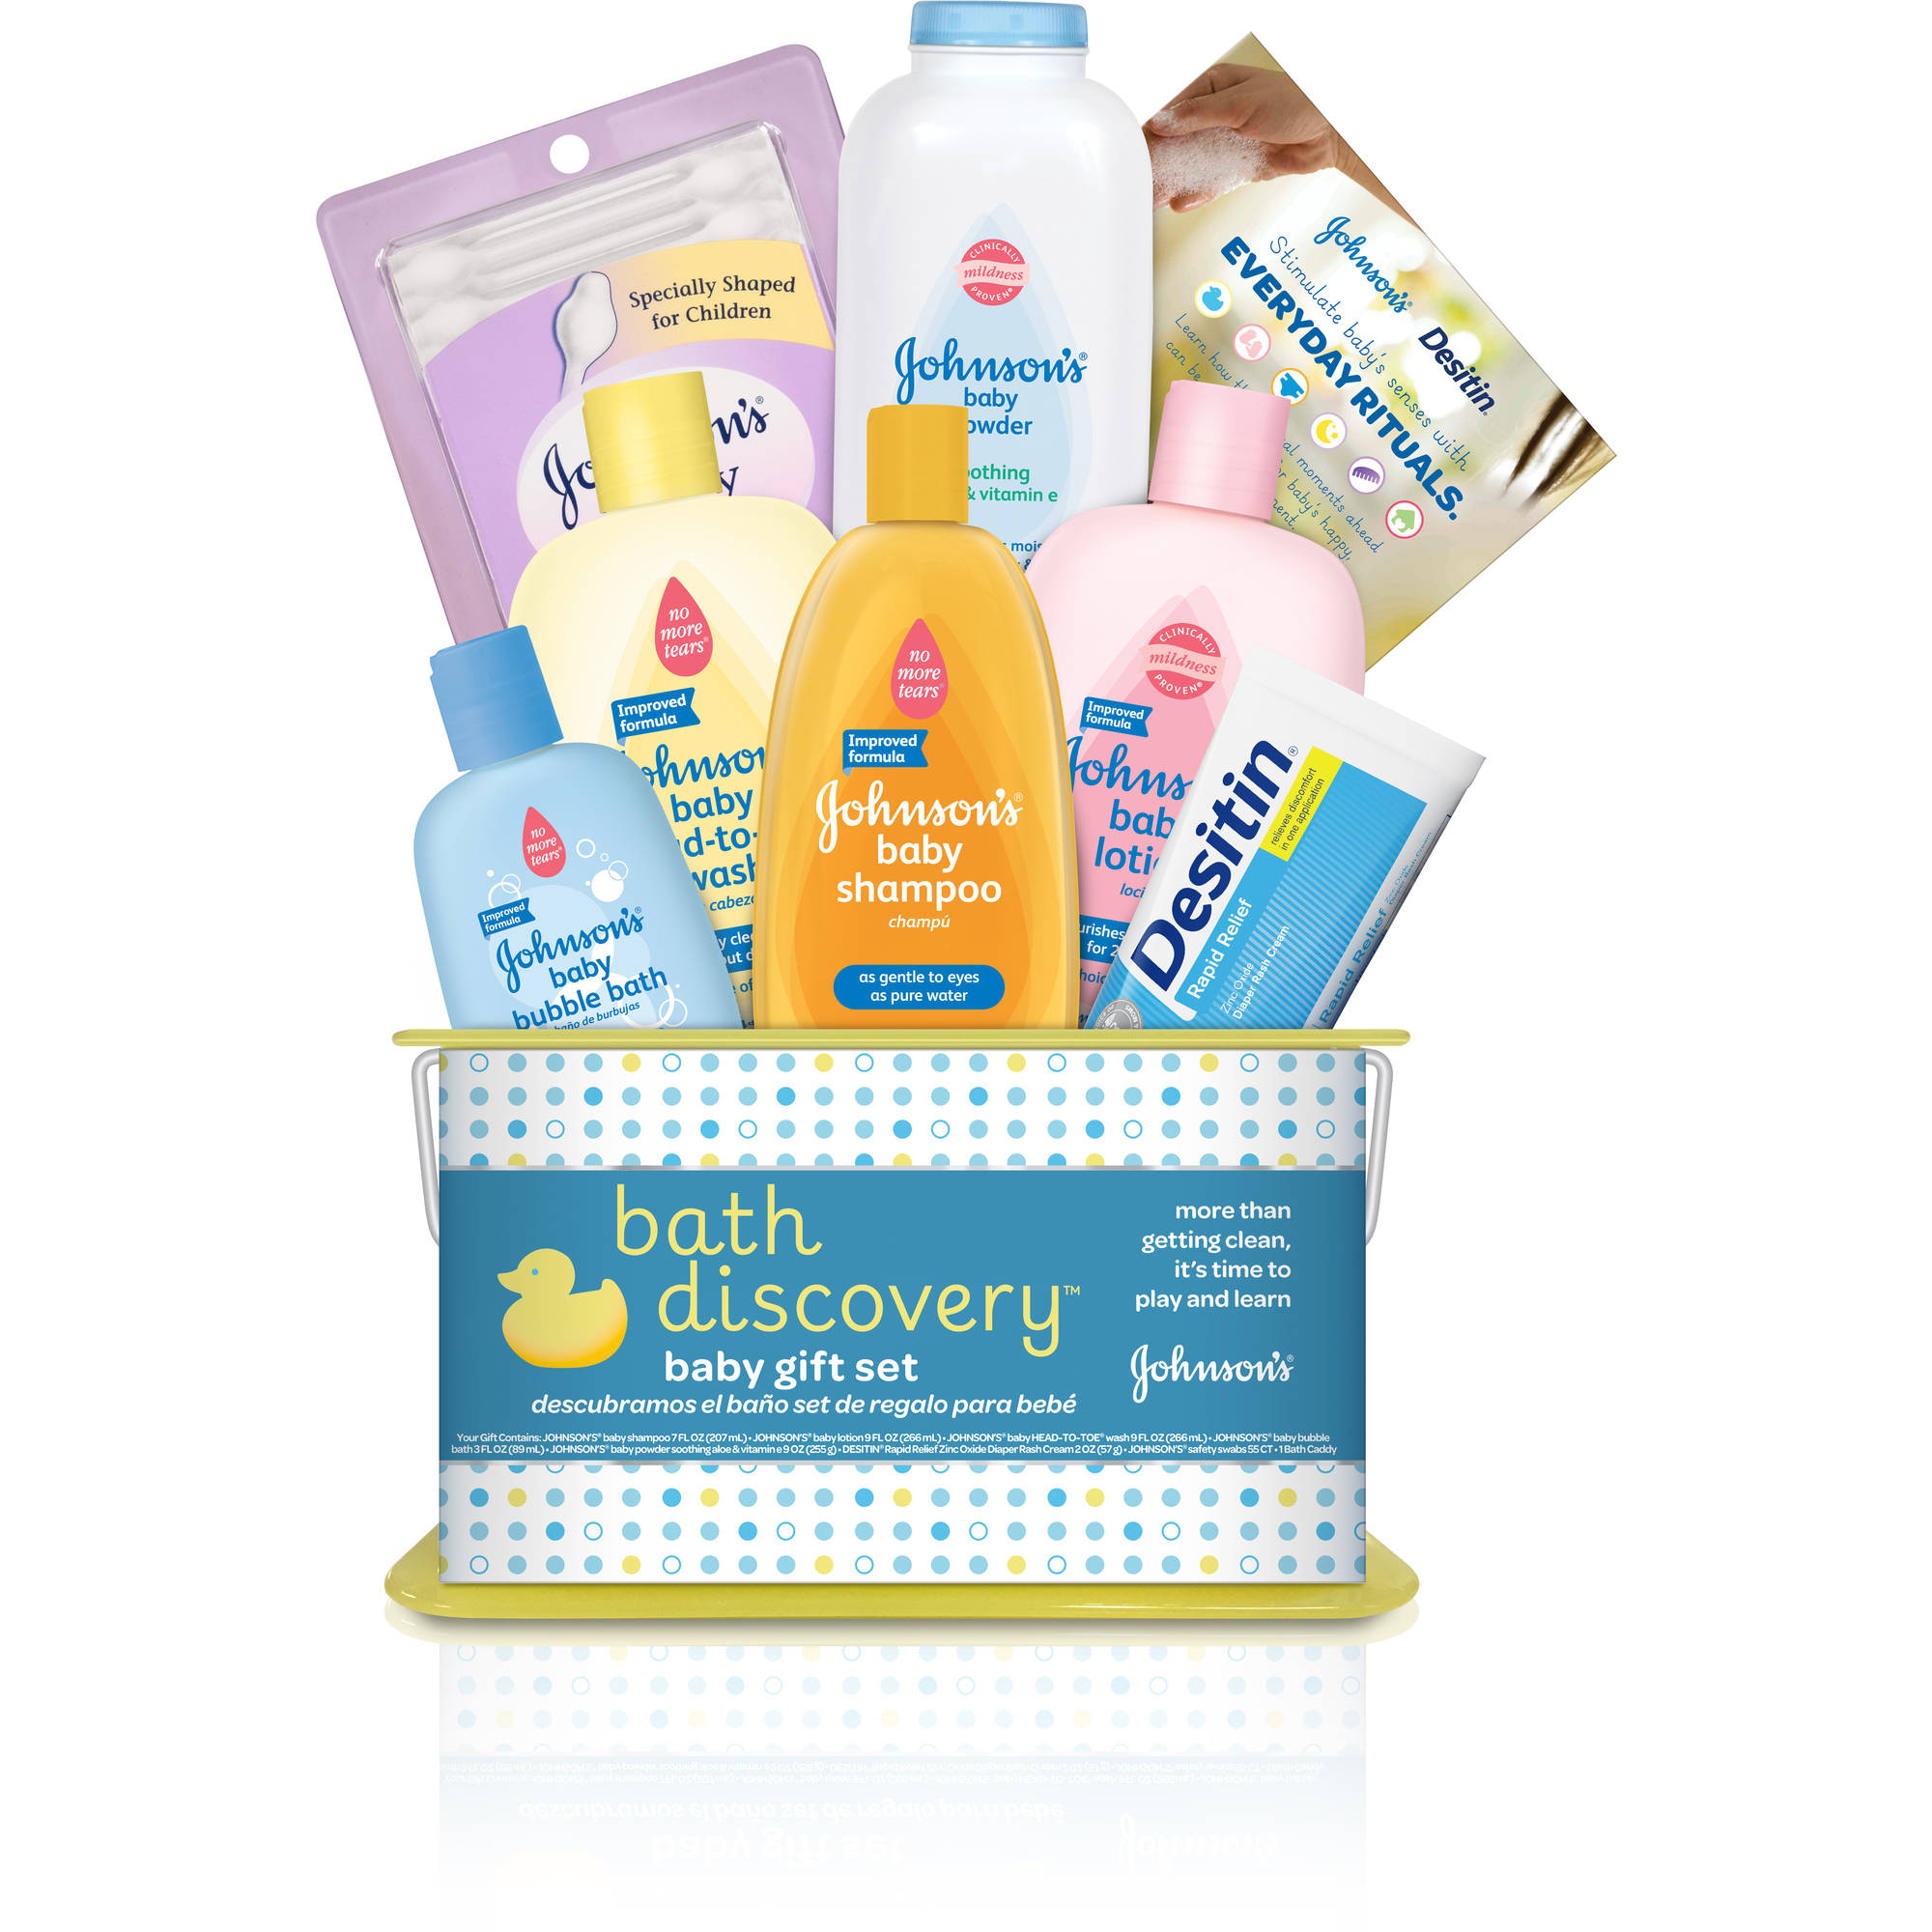 Johnson's bath discovery baby gift set, 8 Items